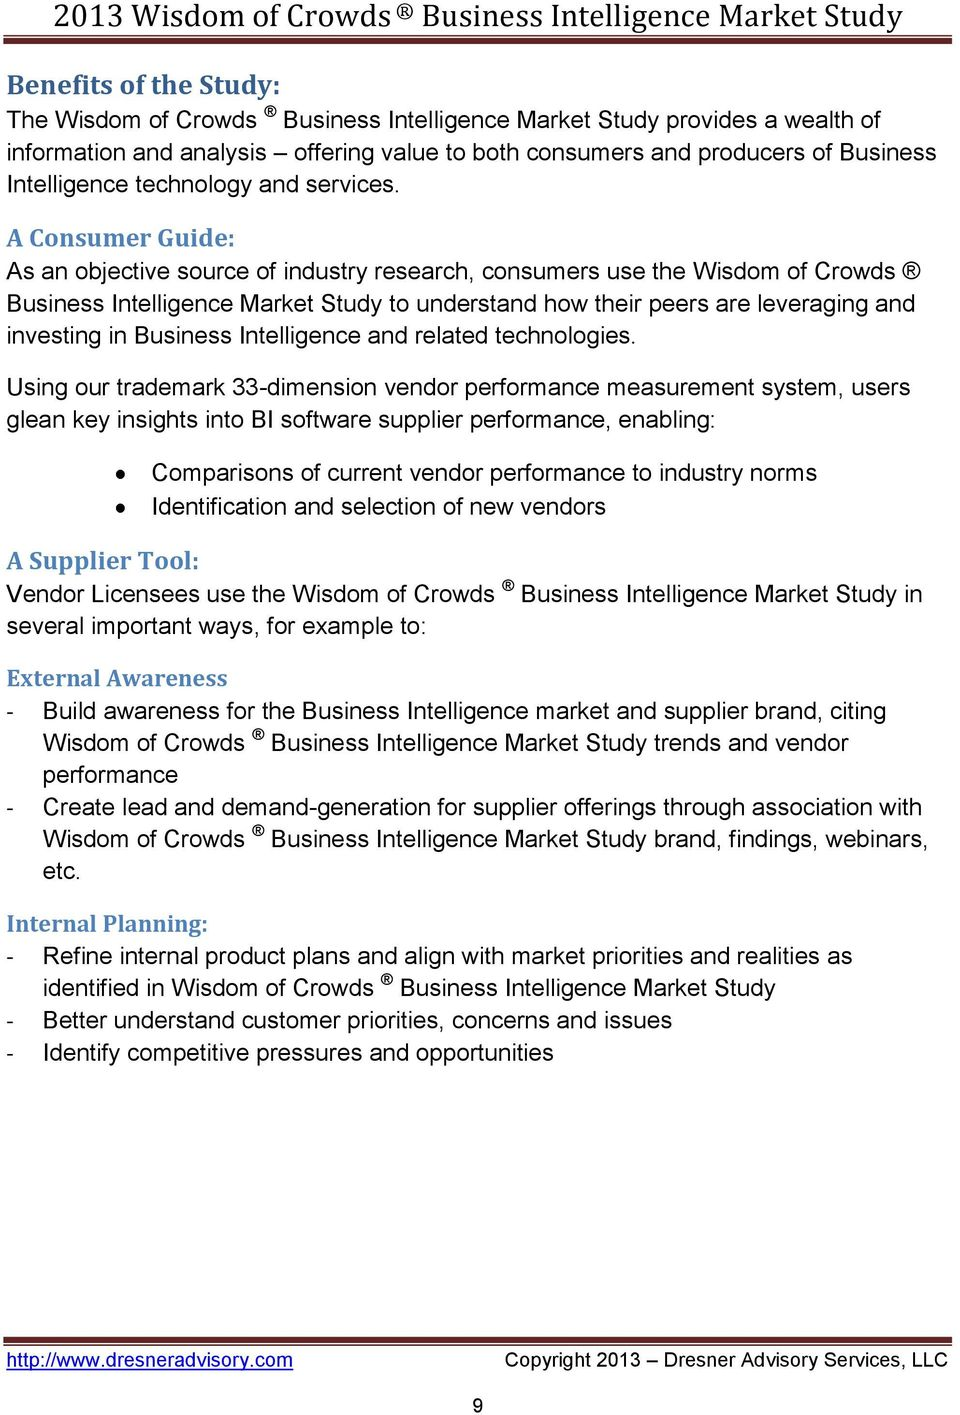 A Consumer Guide: As an objective source of industry research, consumers use the Wisdom of Crowds Business Intelligence Market Study to understand how their peers are leveraging and investing in